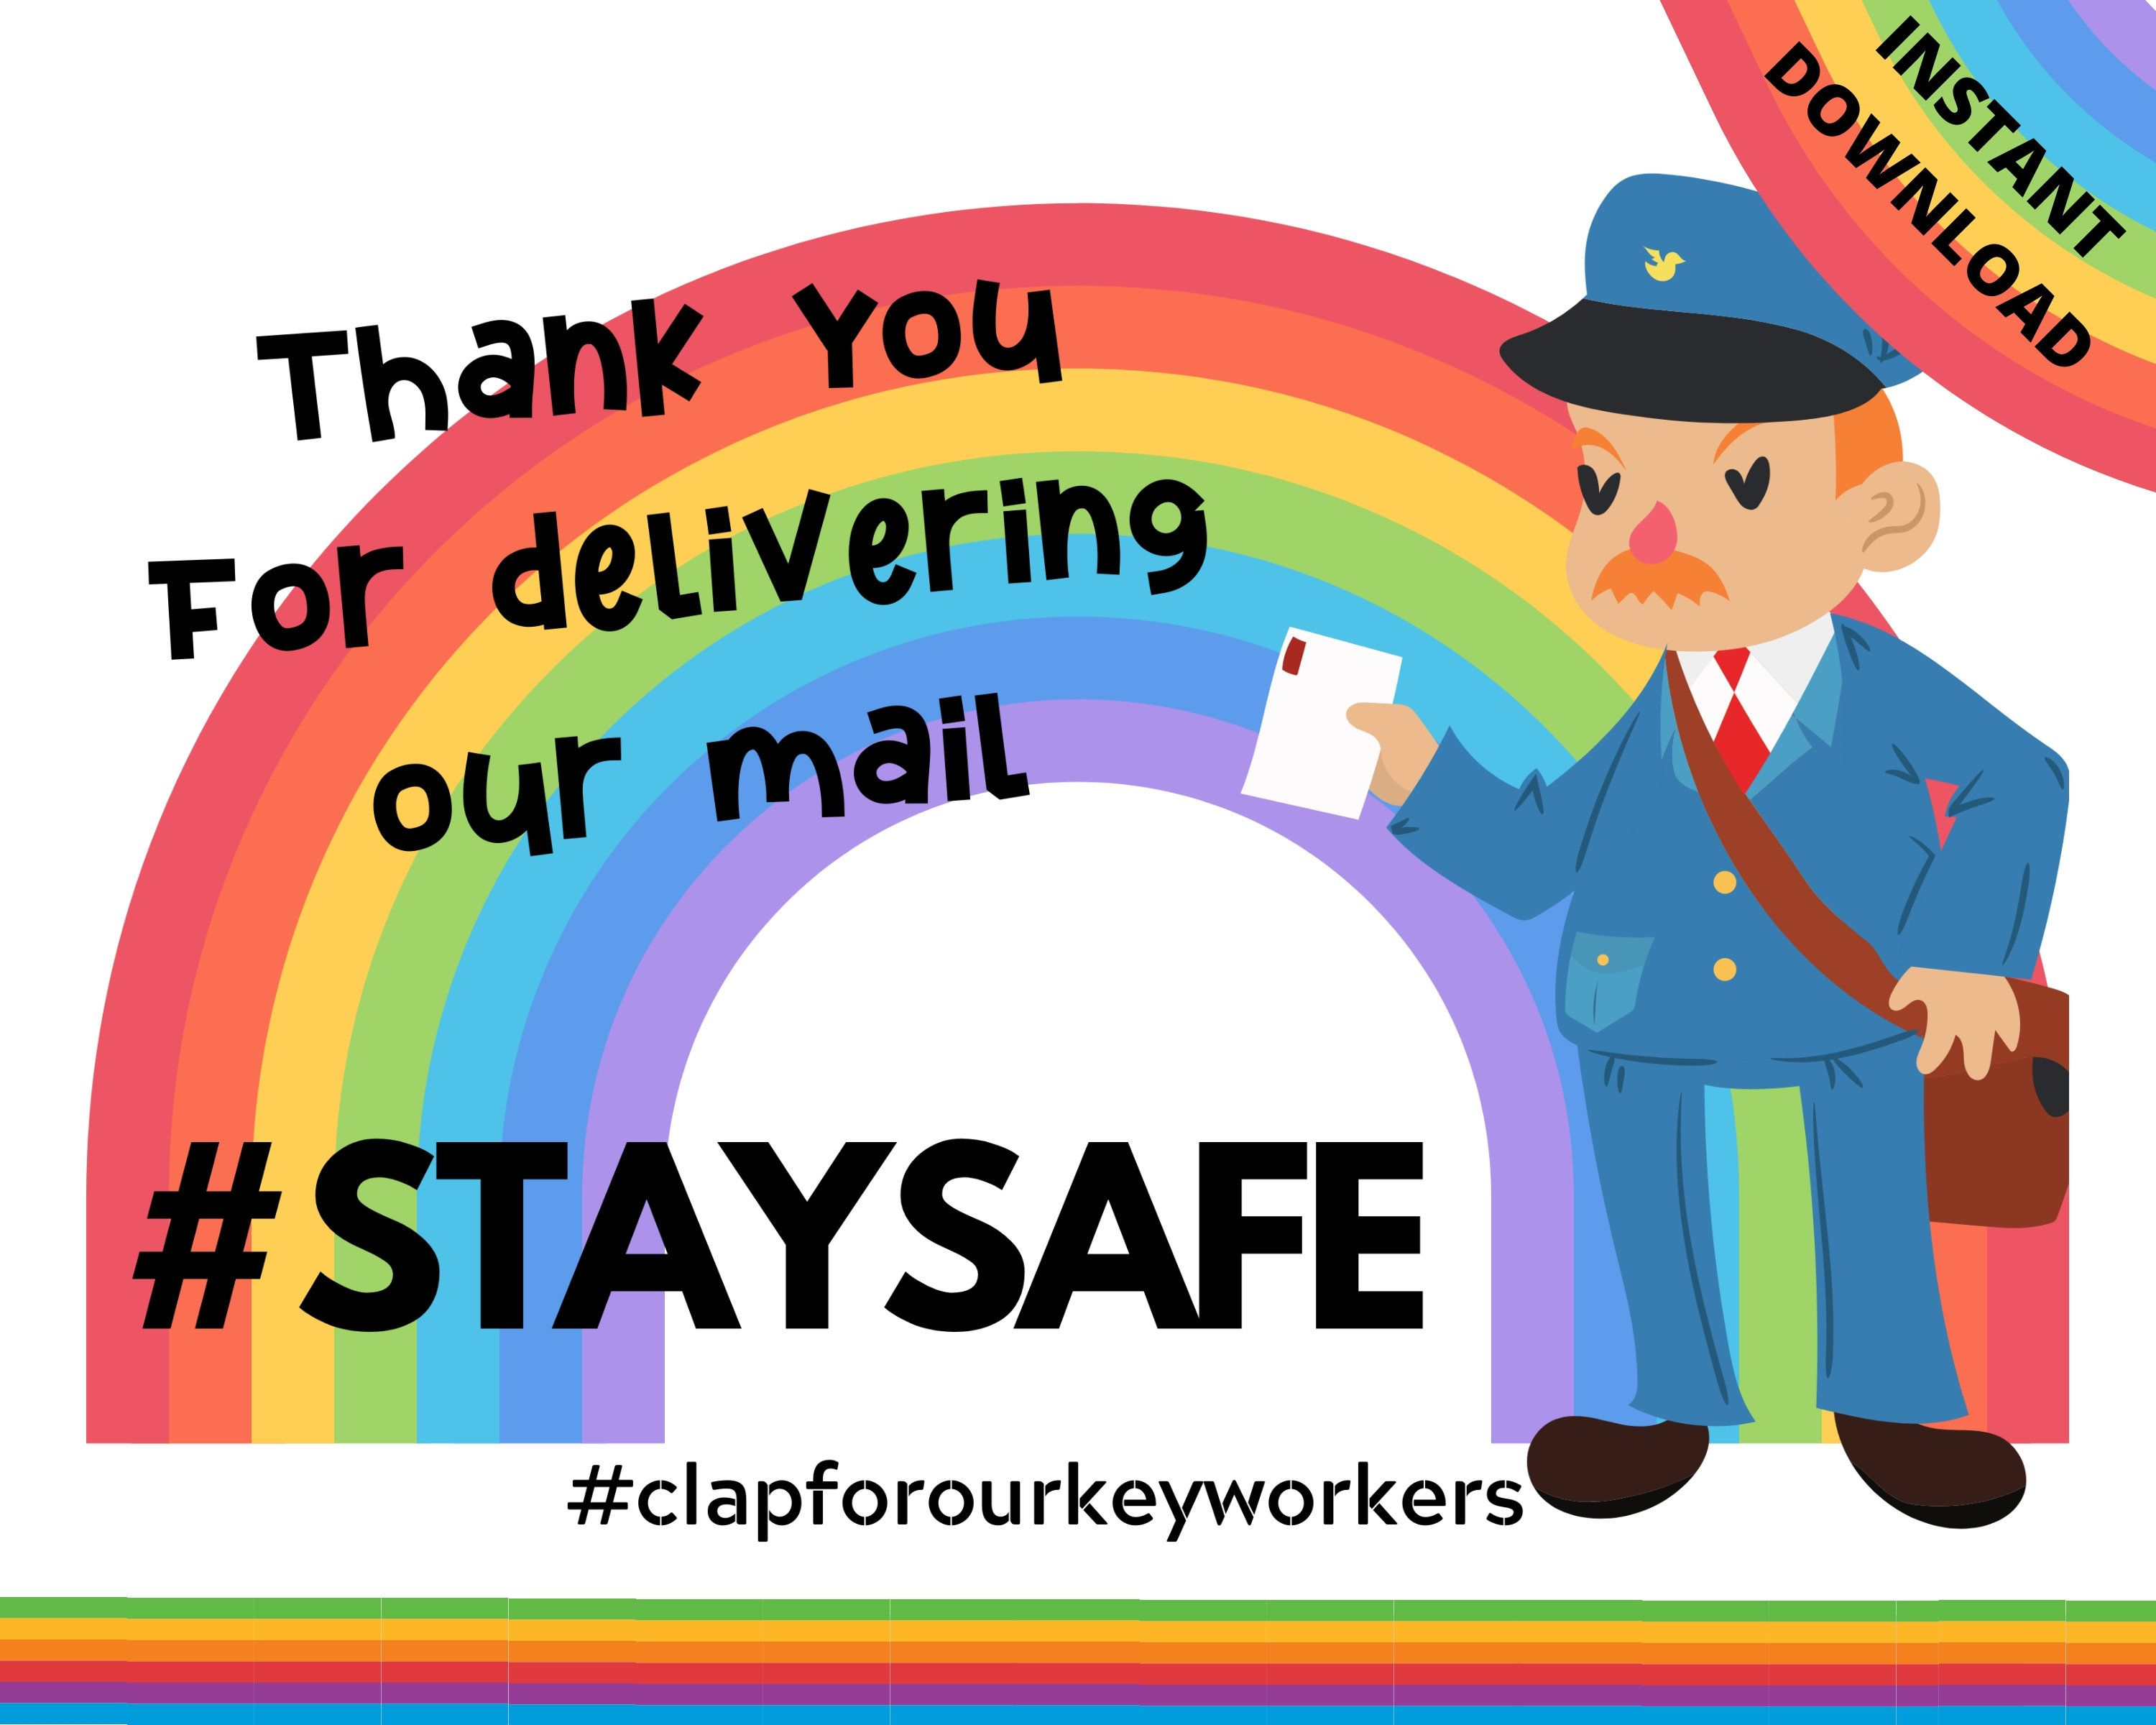 Thank You For Delivering Our Mail A4 Instant Download Window Poster Staysafe Print At Home Keyworkers Poppabelle Thank You Poster Window Poster Mail Person